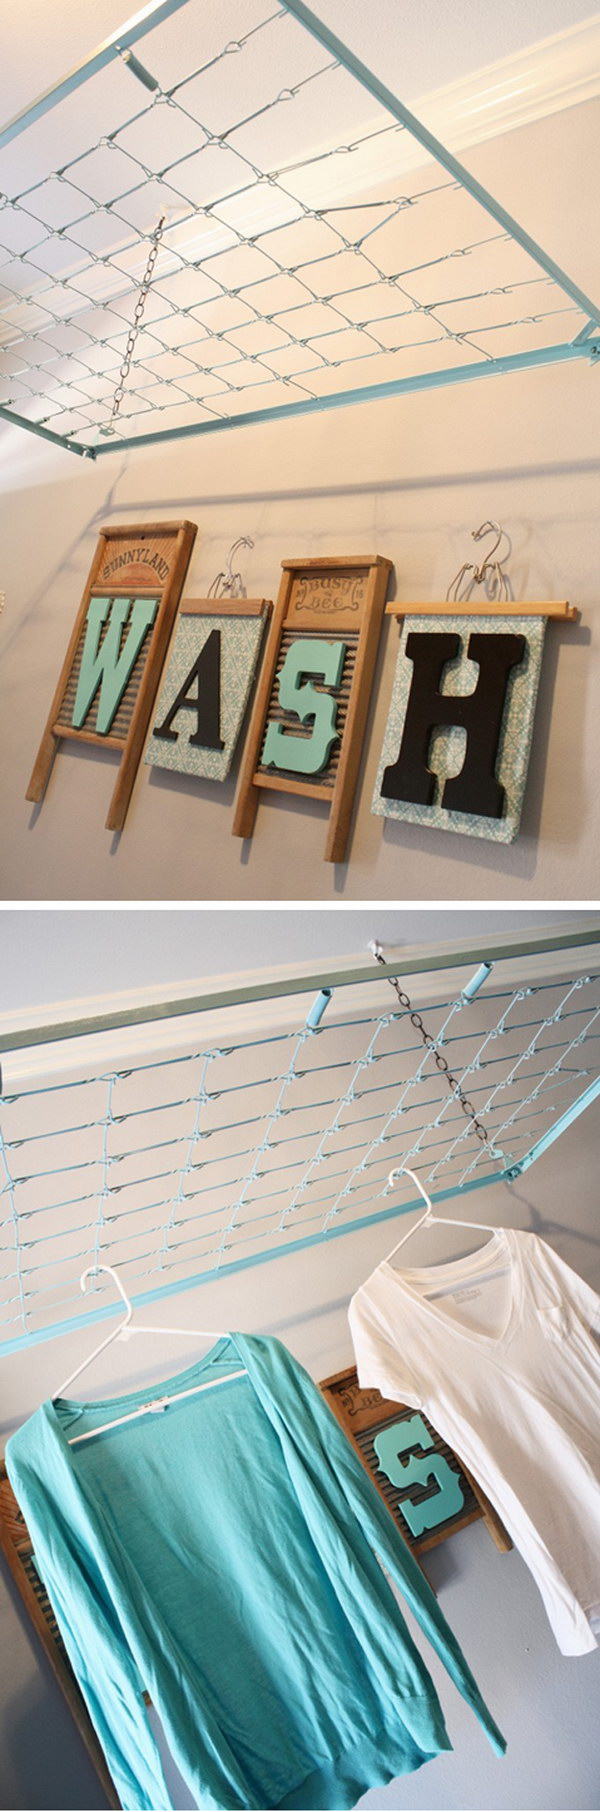 Repurpose A Crib Spring As A Drying Rack.